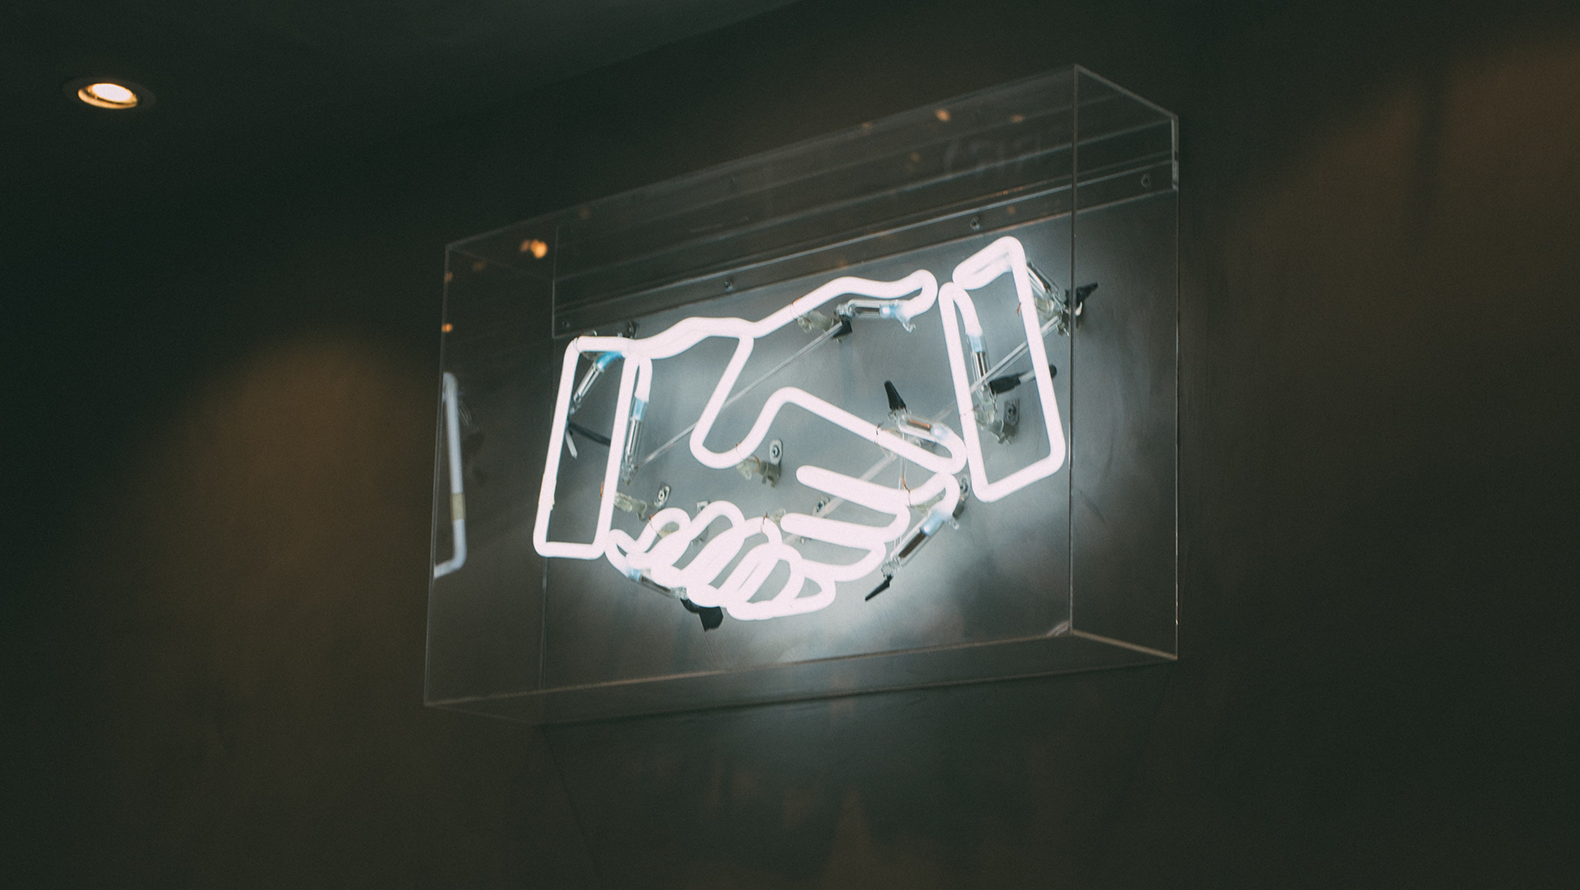 A neon sign of a handshake. Photo by Charles Deluvio on Unsplash